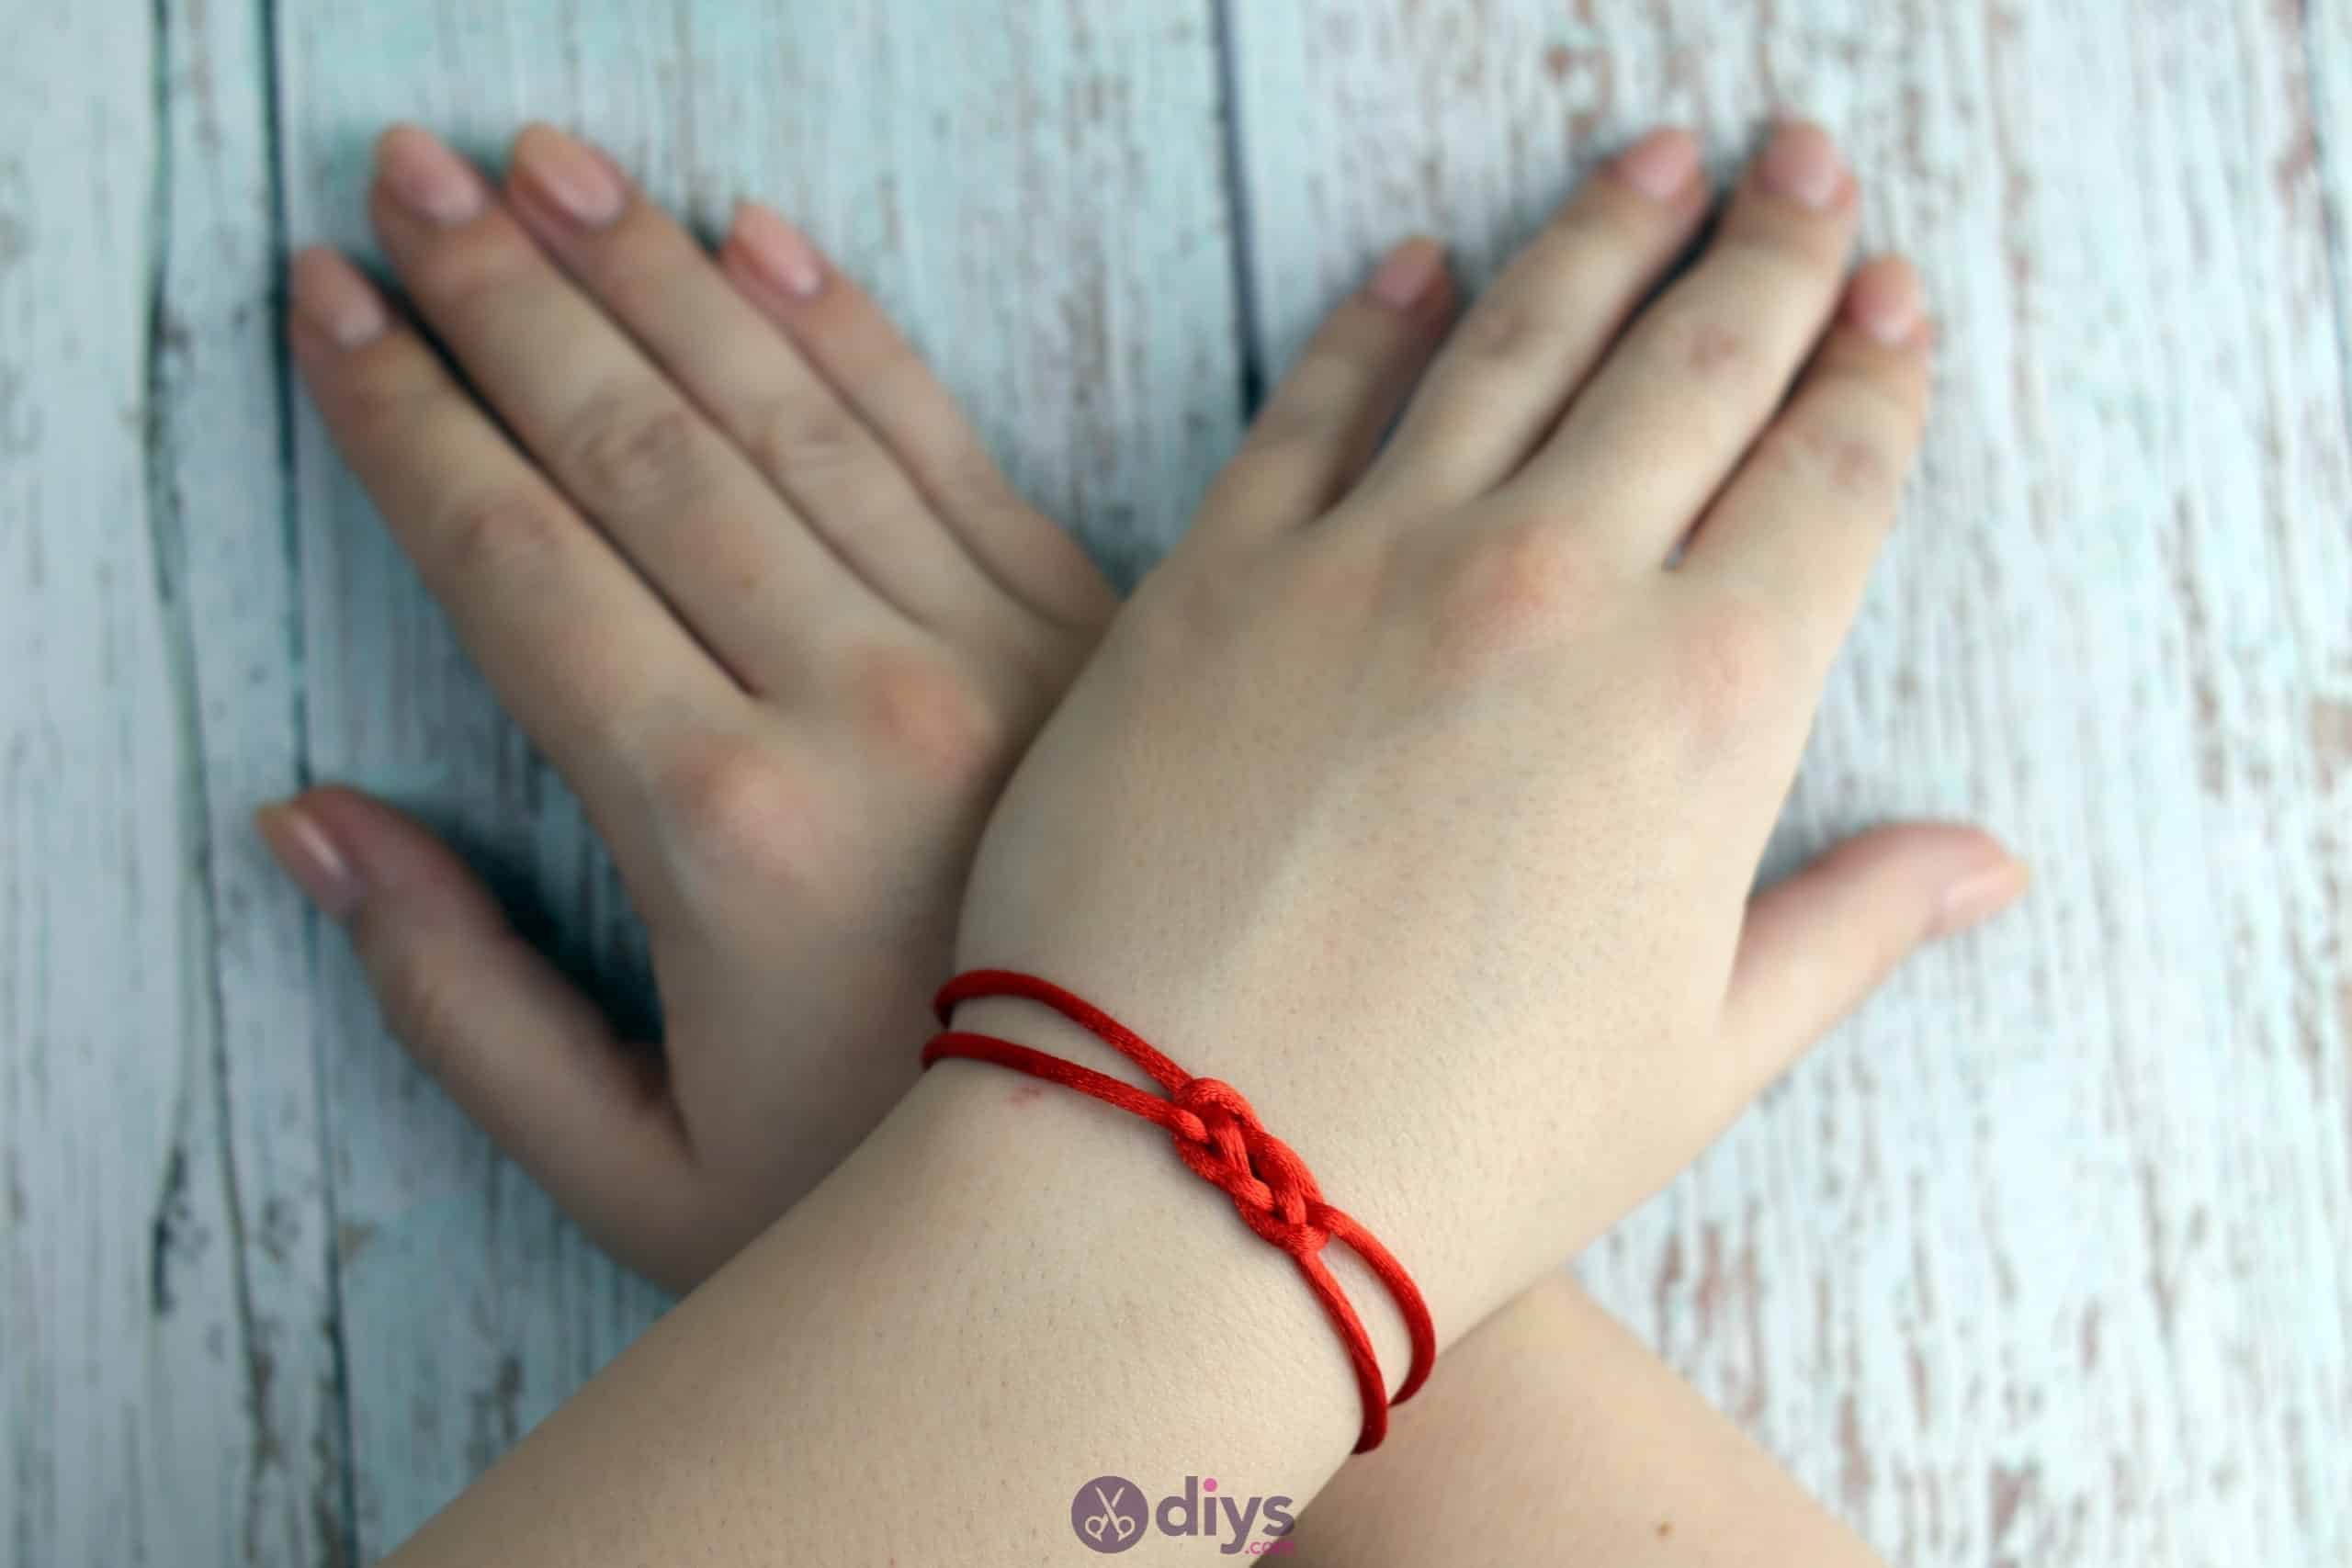 Diy knotted bracelet red string